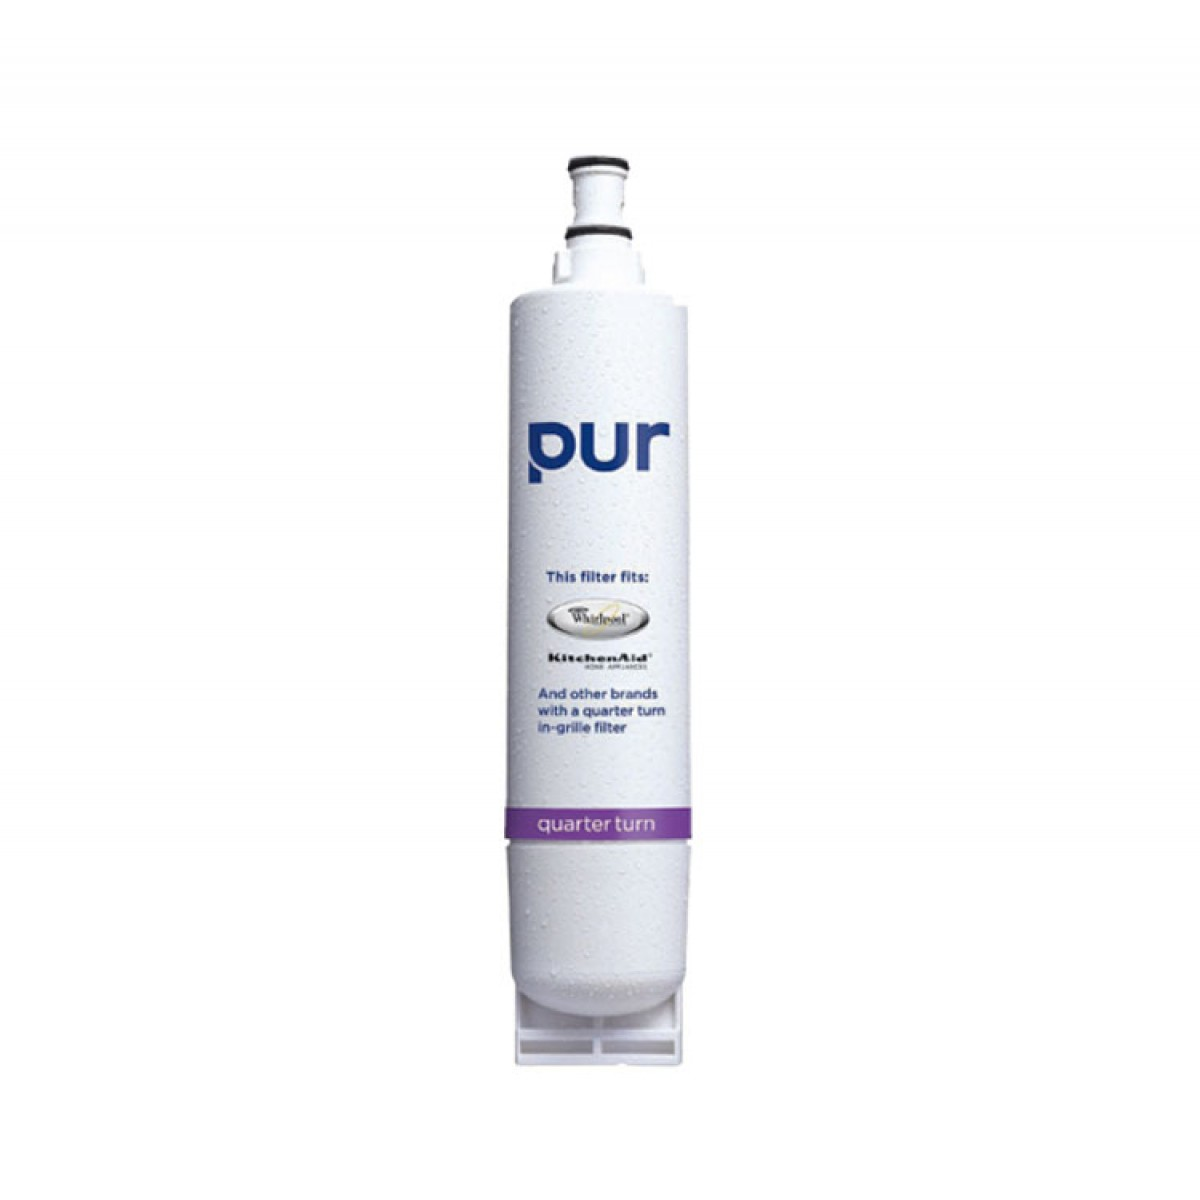 Pur qtss whirlpool quarter turn refrigerator ice and water filter - Whirlpool refrigerator ice and water filter pur ...